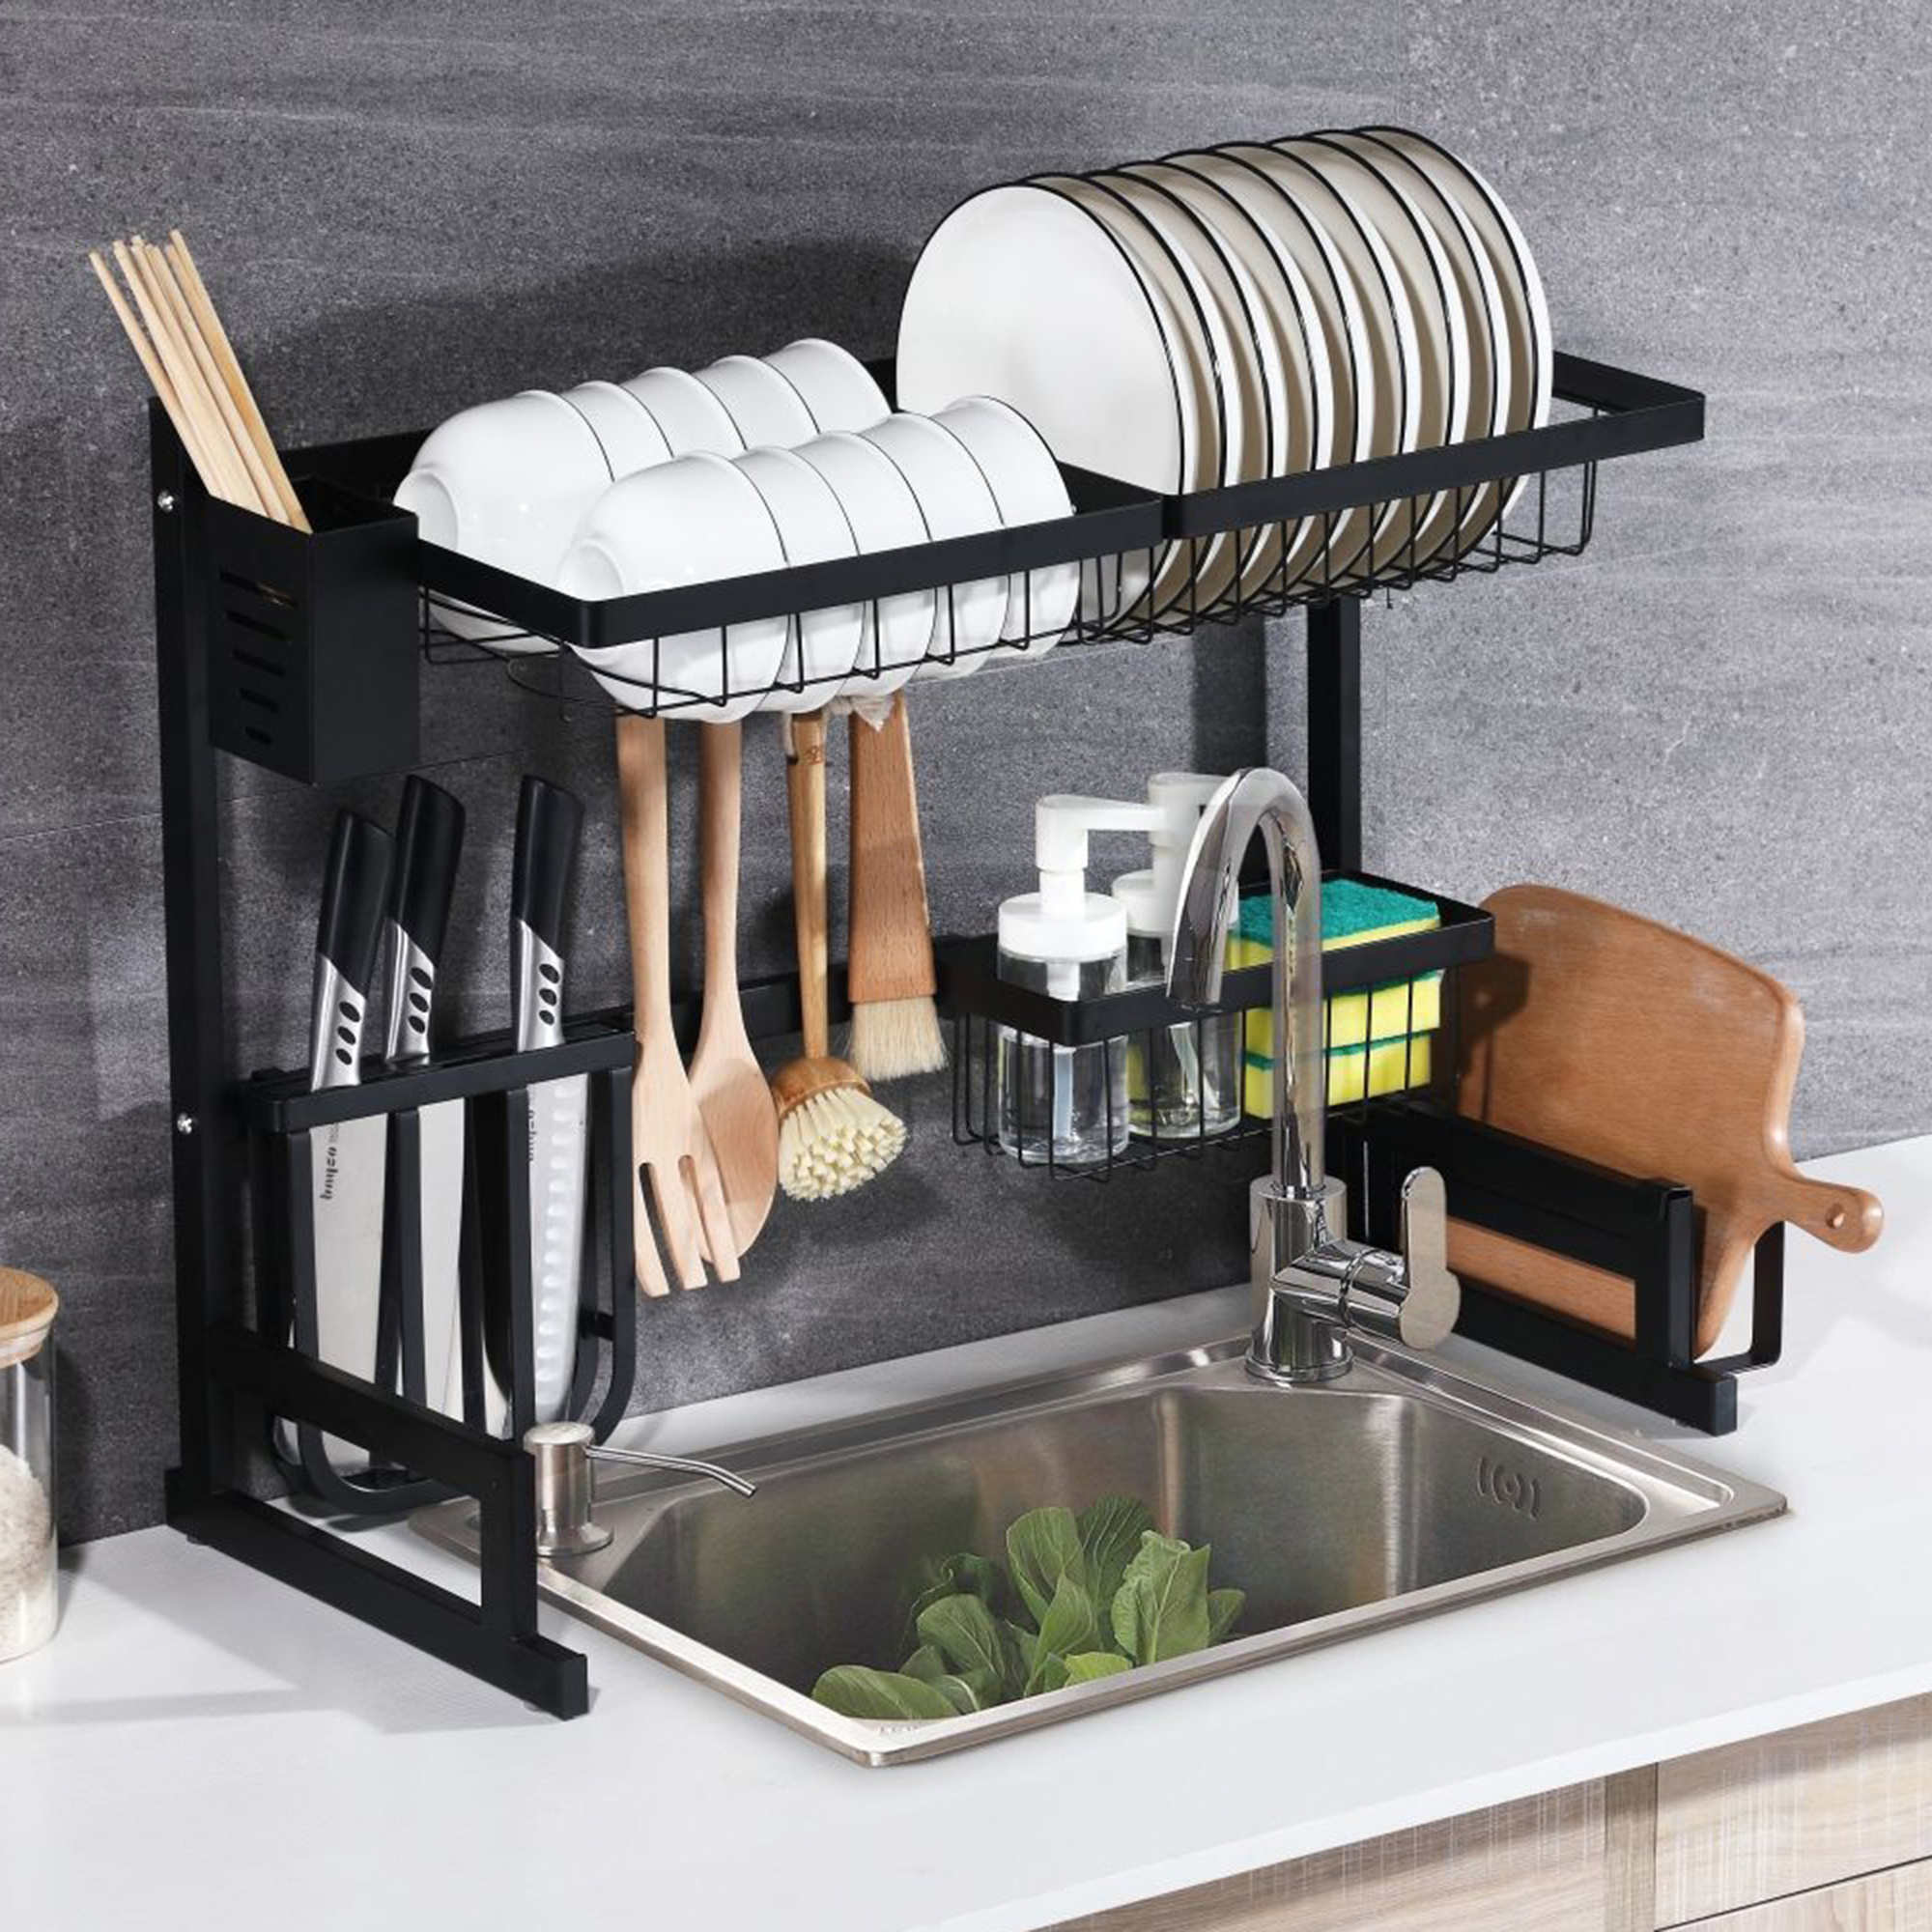 kitchen over the sink dish drying rack 201 stainless steel dish rack with utensil holder hooks cup hanging non slip dish drying rack with stable